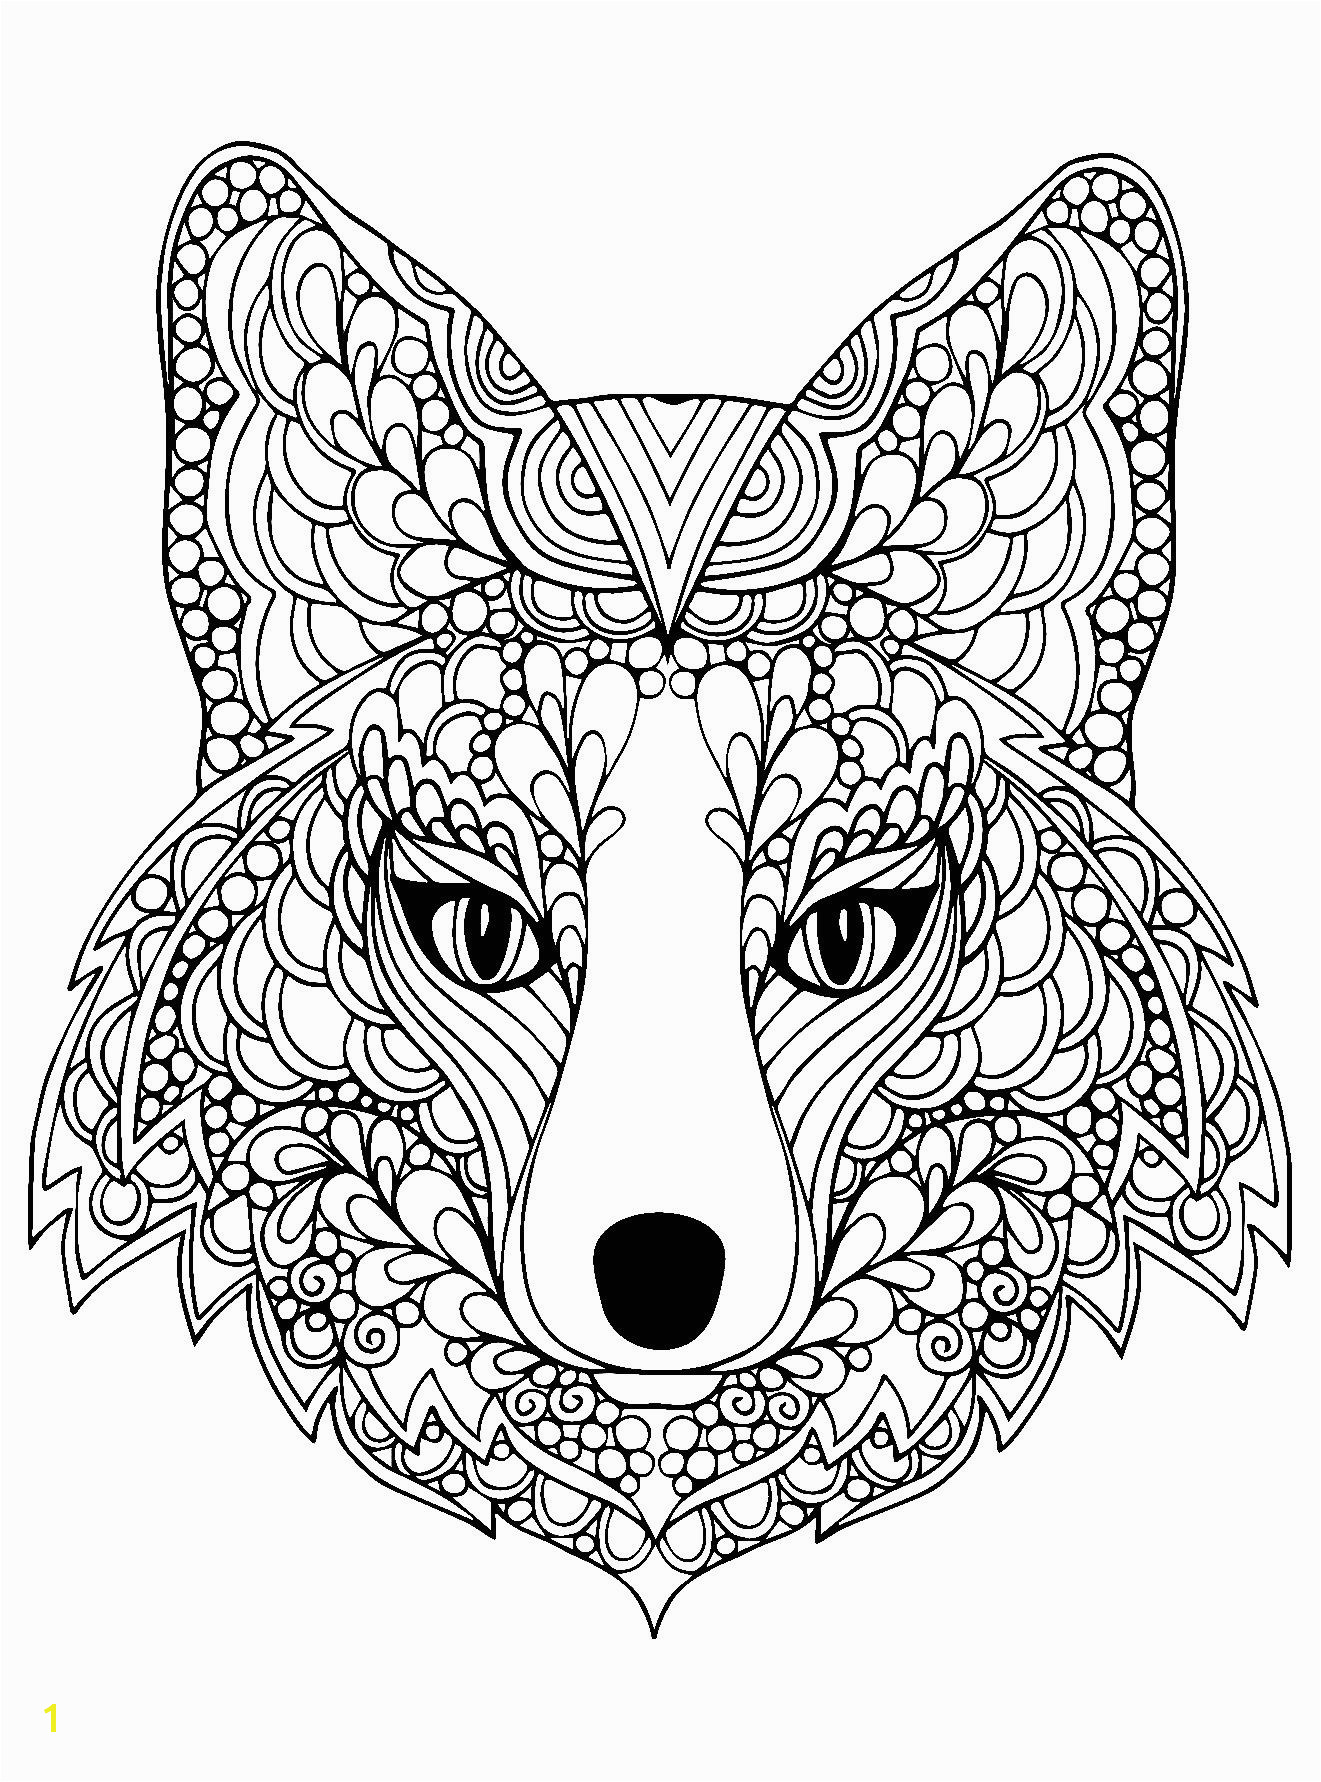 arctic fox coloring pages arctic fox coloring pages coloring pages to download and arctic coloring fox pages